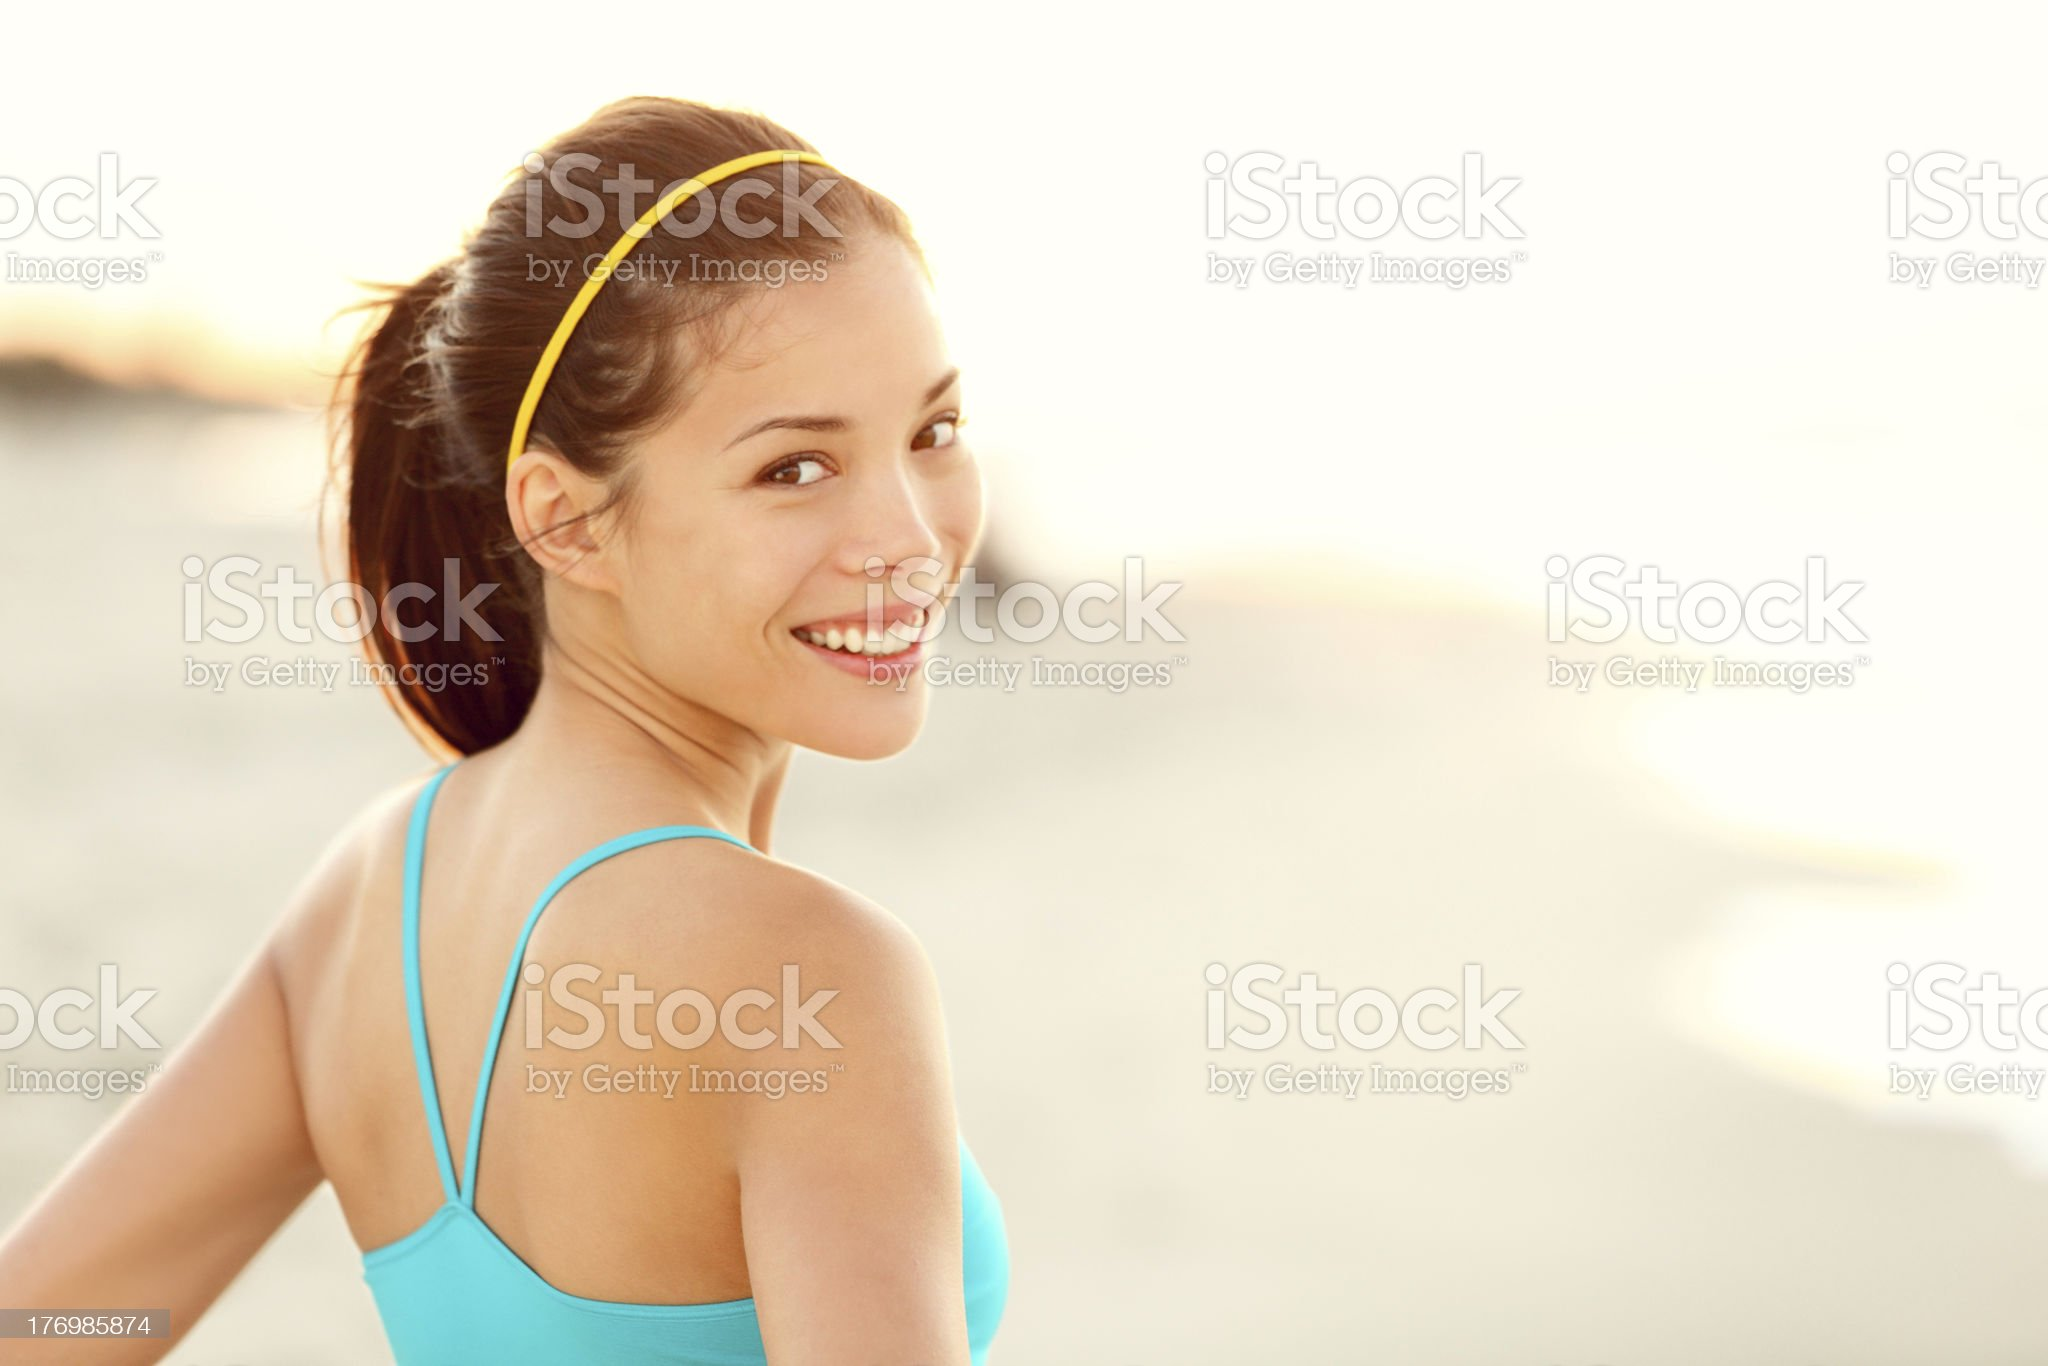 Fitness woman beach portrait royalty-free stock photo